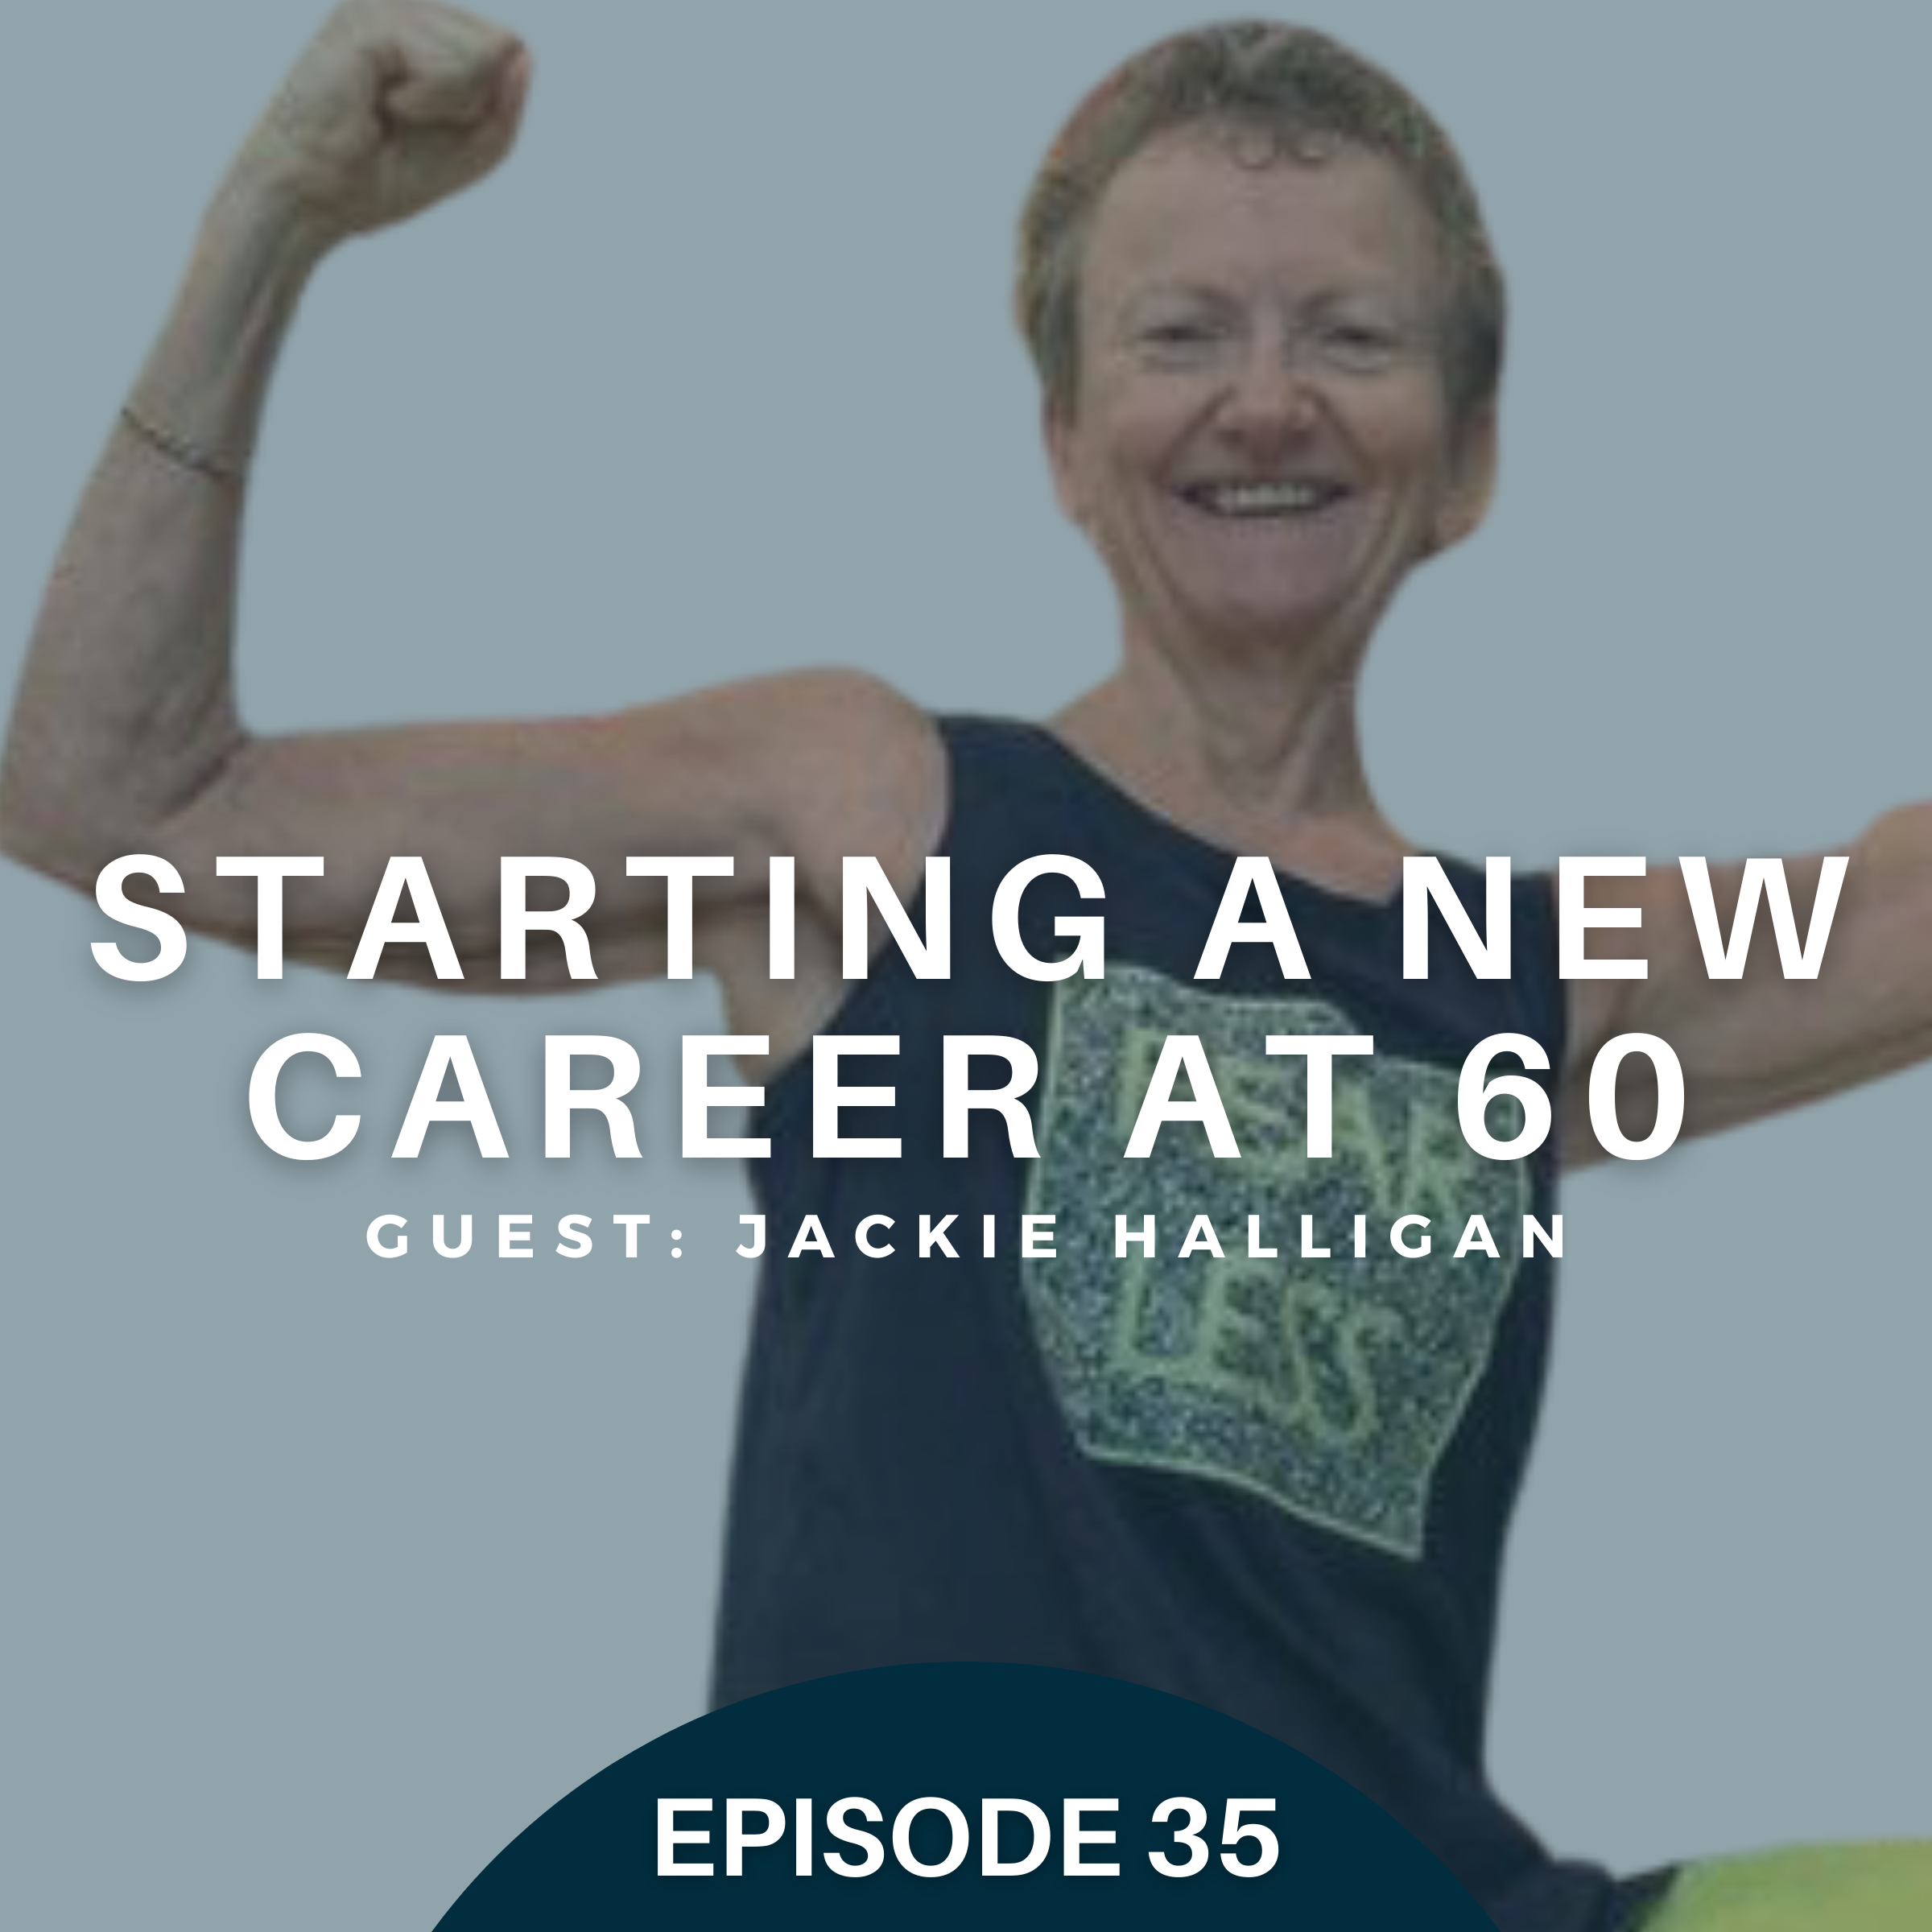 Starting a New Career at 60 with Jackie Halligan